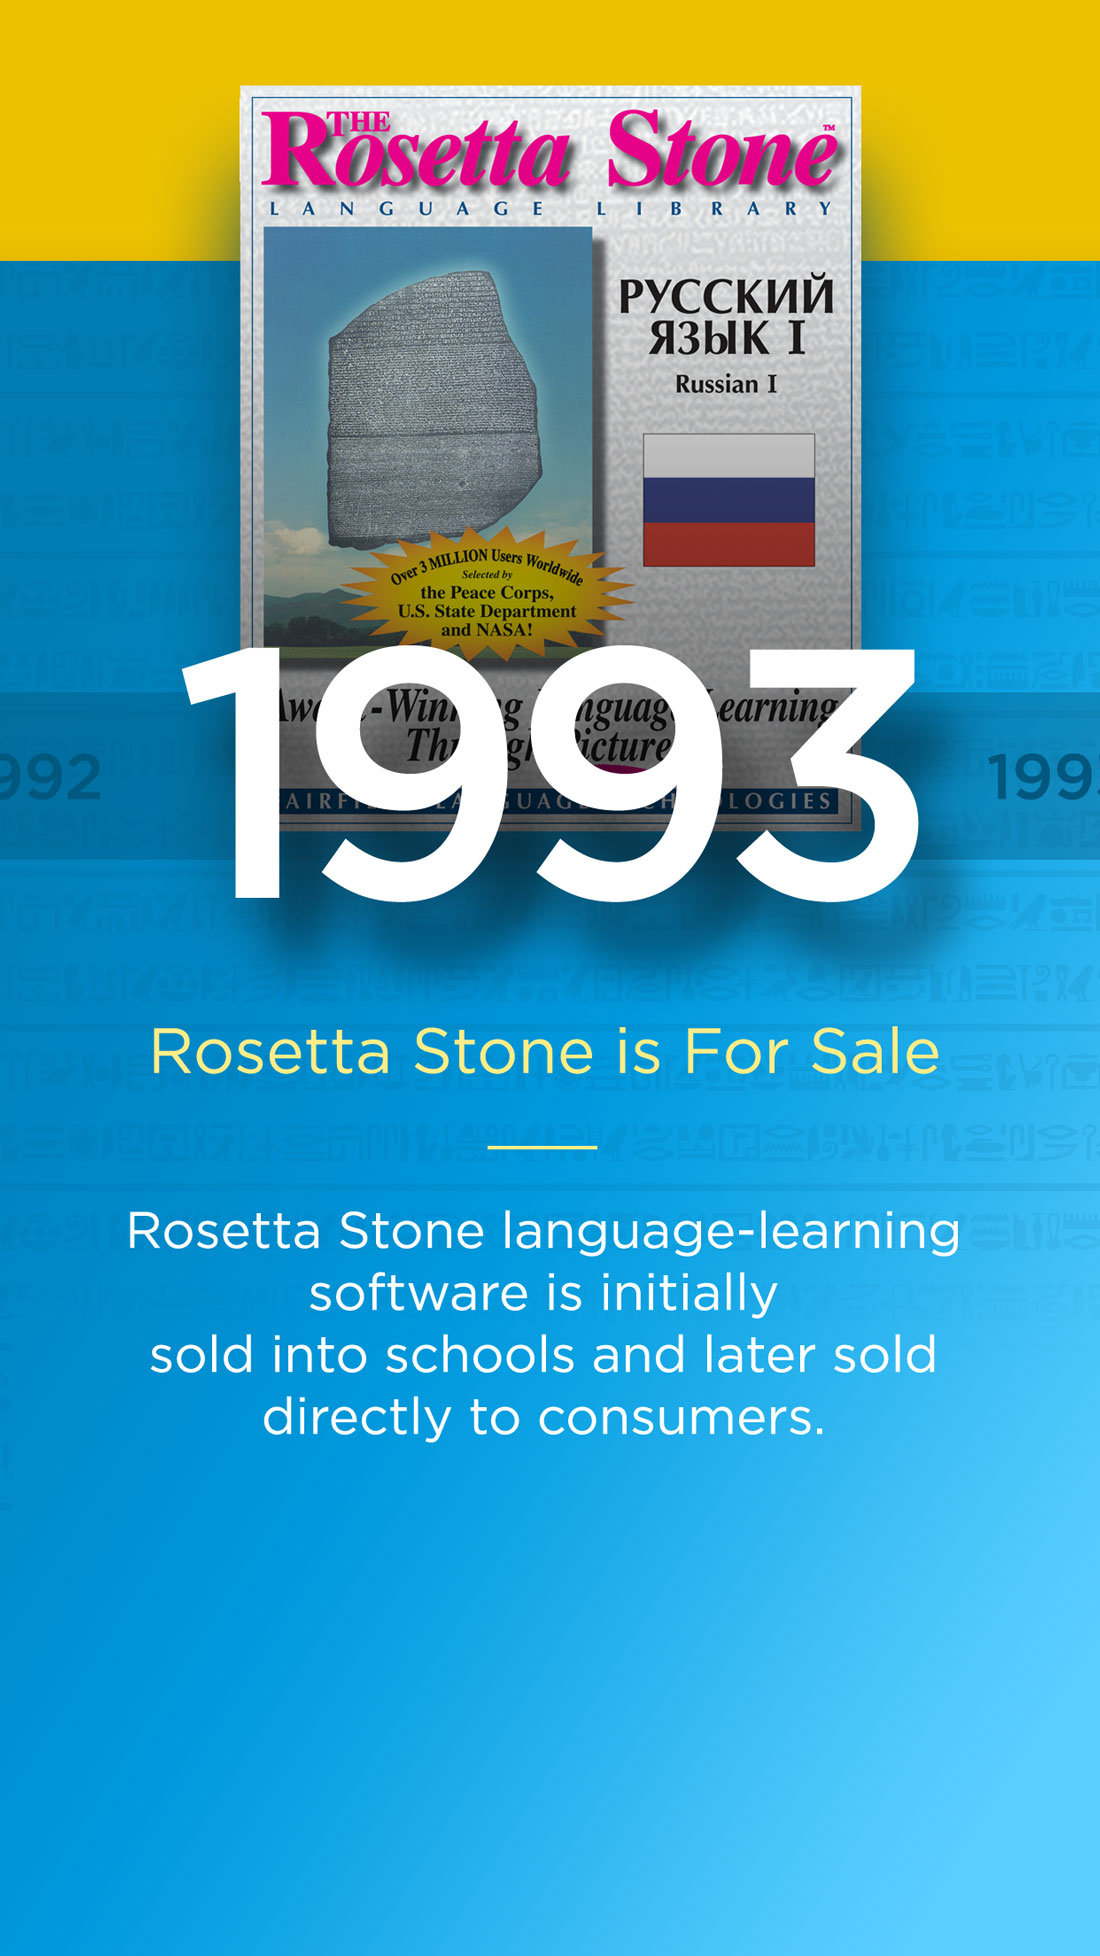 About Rosetta Stone